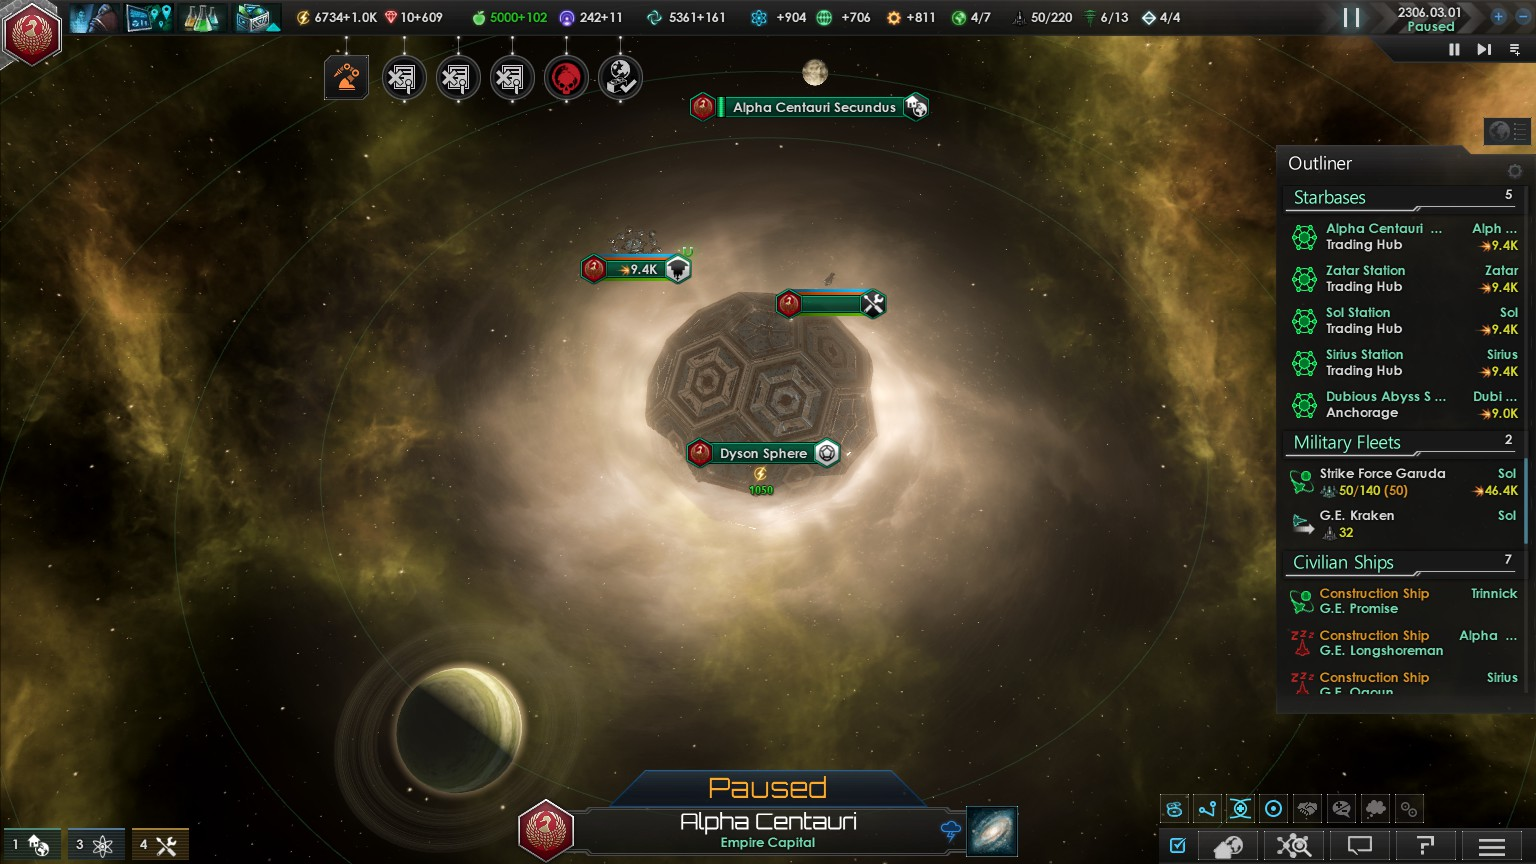 Fun fact you can build a dyson sphere around the blackhole